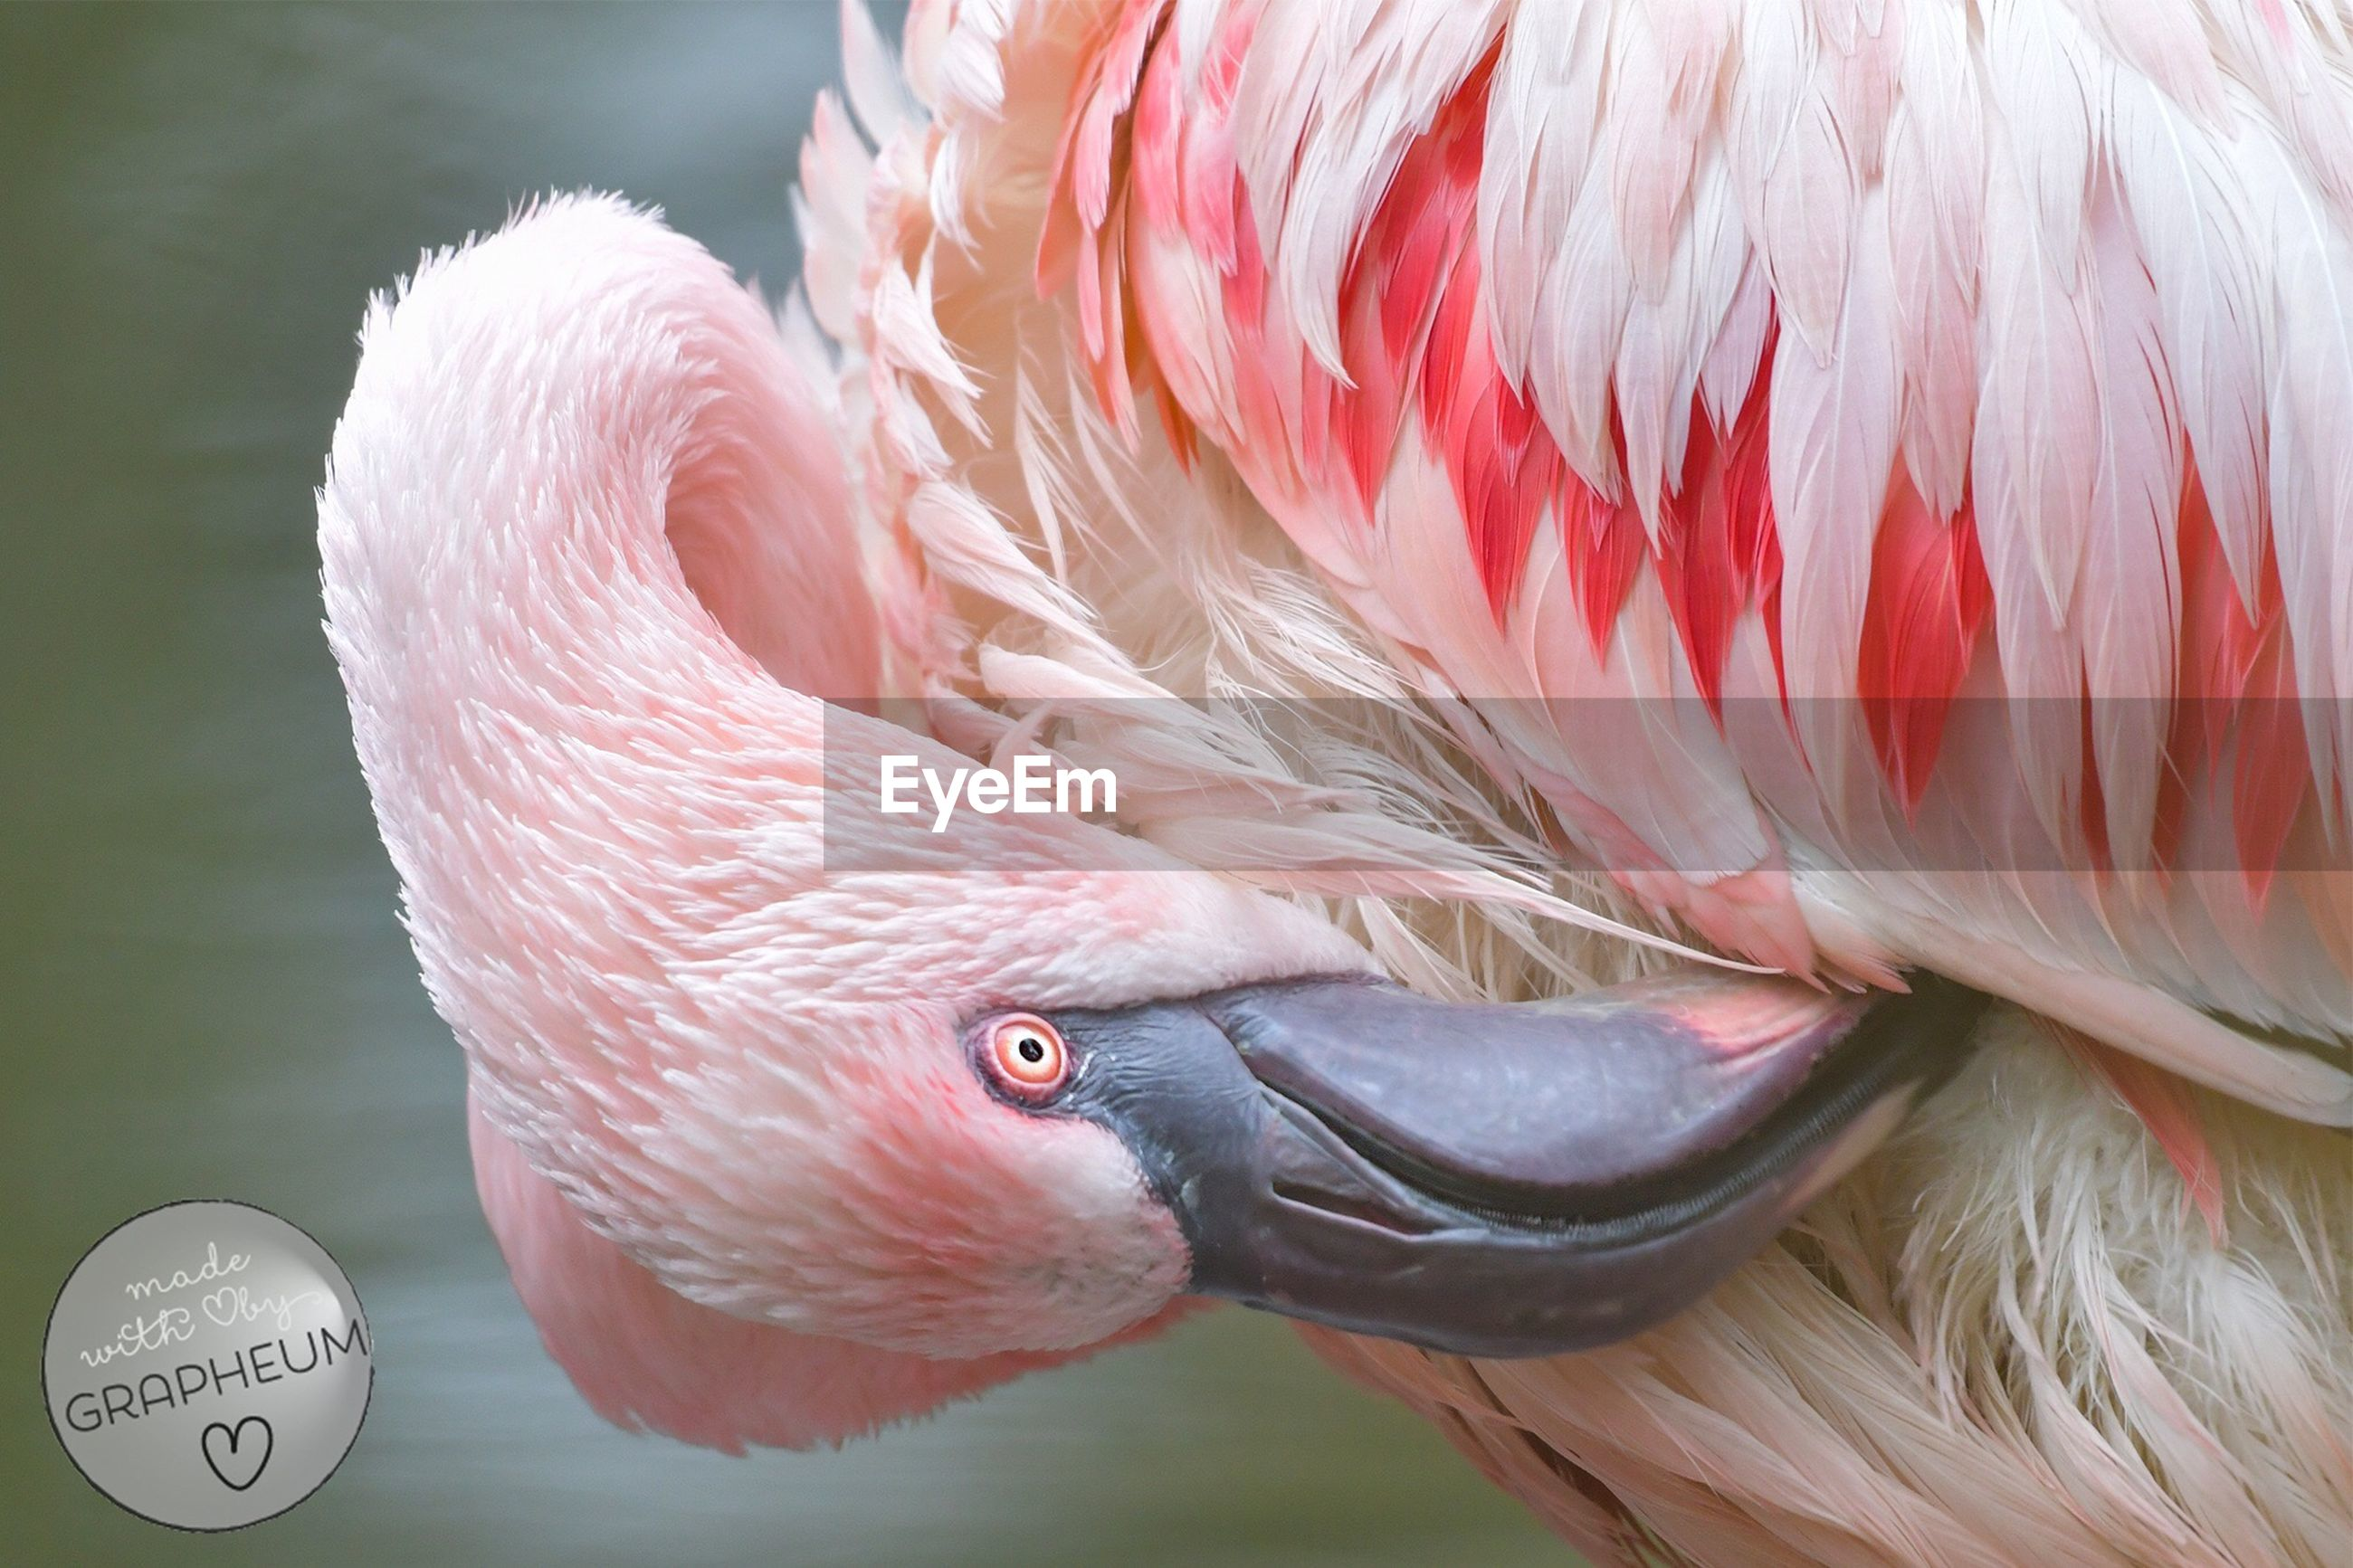 animal themes, flamingo, pink color, one animal, bird, close-up, no people, animal, animals in the wild, nature, sea life, outdoors, day